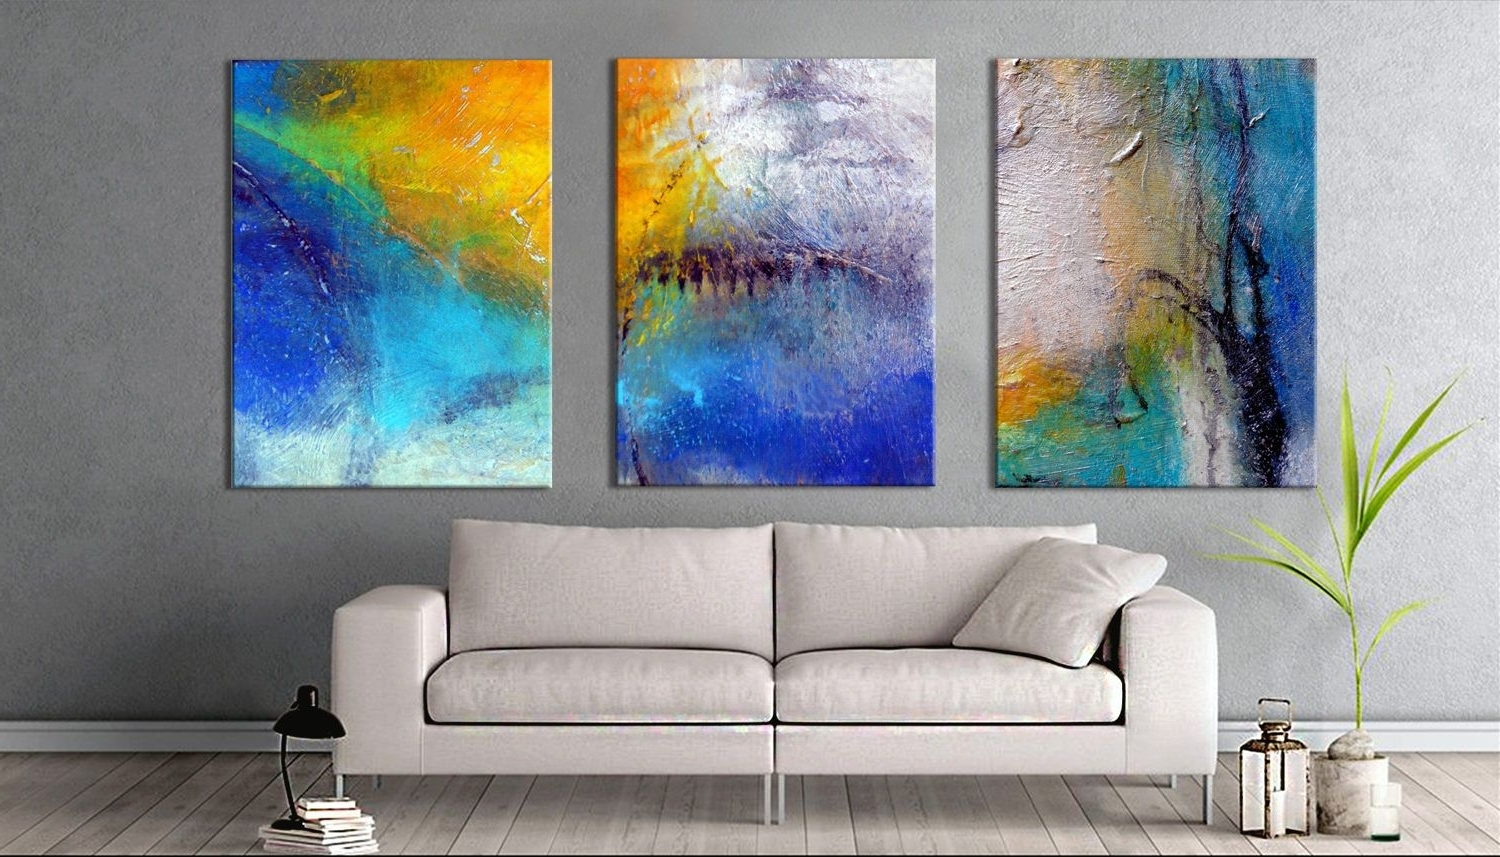 Best And Newest Extra Large Wall Art Regarding Oversized Wall Art (View 2 of 15)